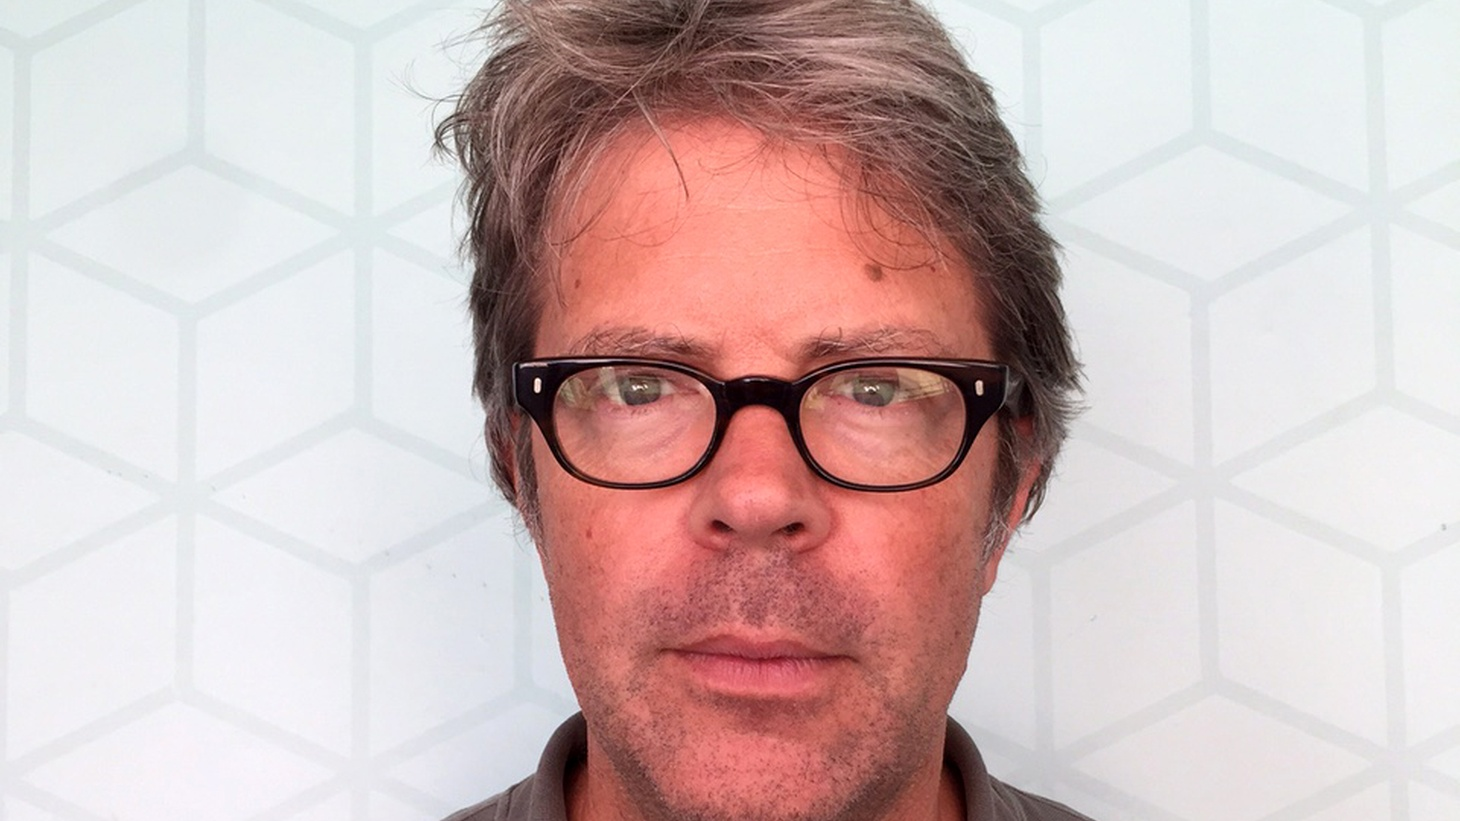 Jonathan Franzen's latest book is an exploration of intensely intimate relationships and the inevitability of their destructive effects.